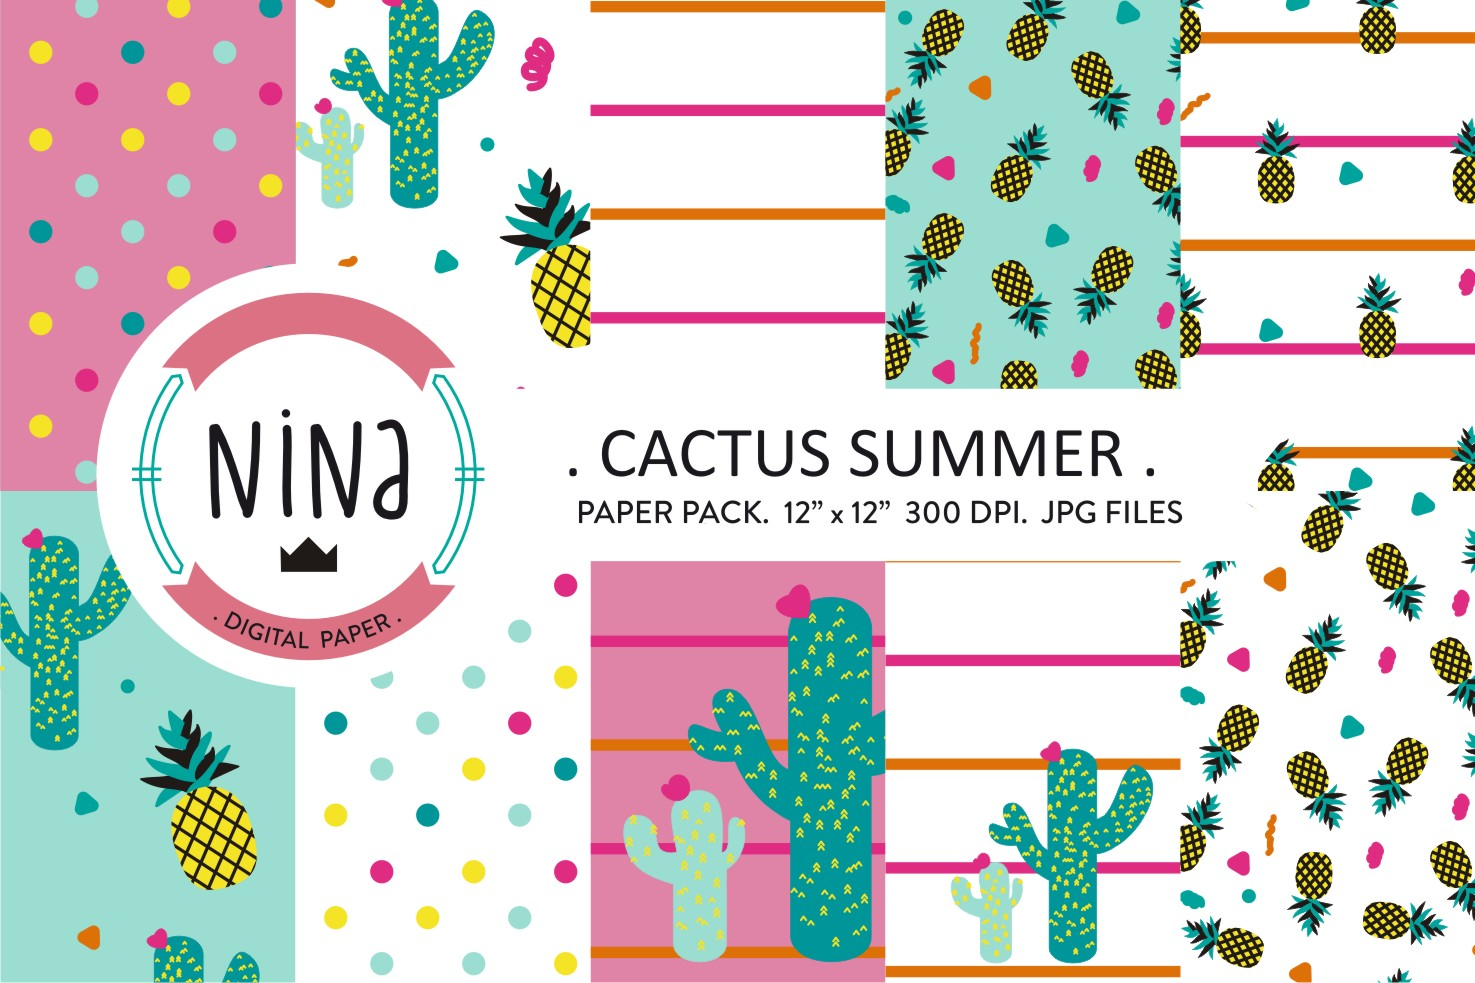 Download Free Cactus Wrapping Paper Cactus Paper Pack Graphic By Nina Prints for Cricut Explore, Silhouette and other cutting machines.